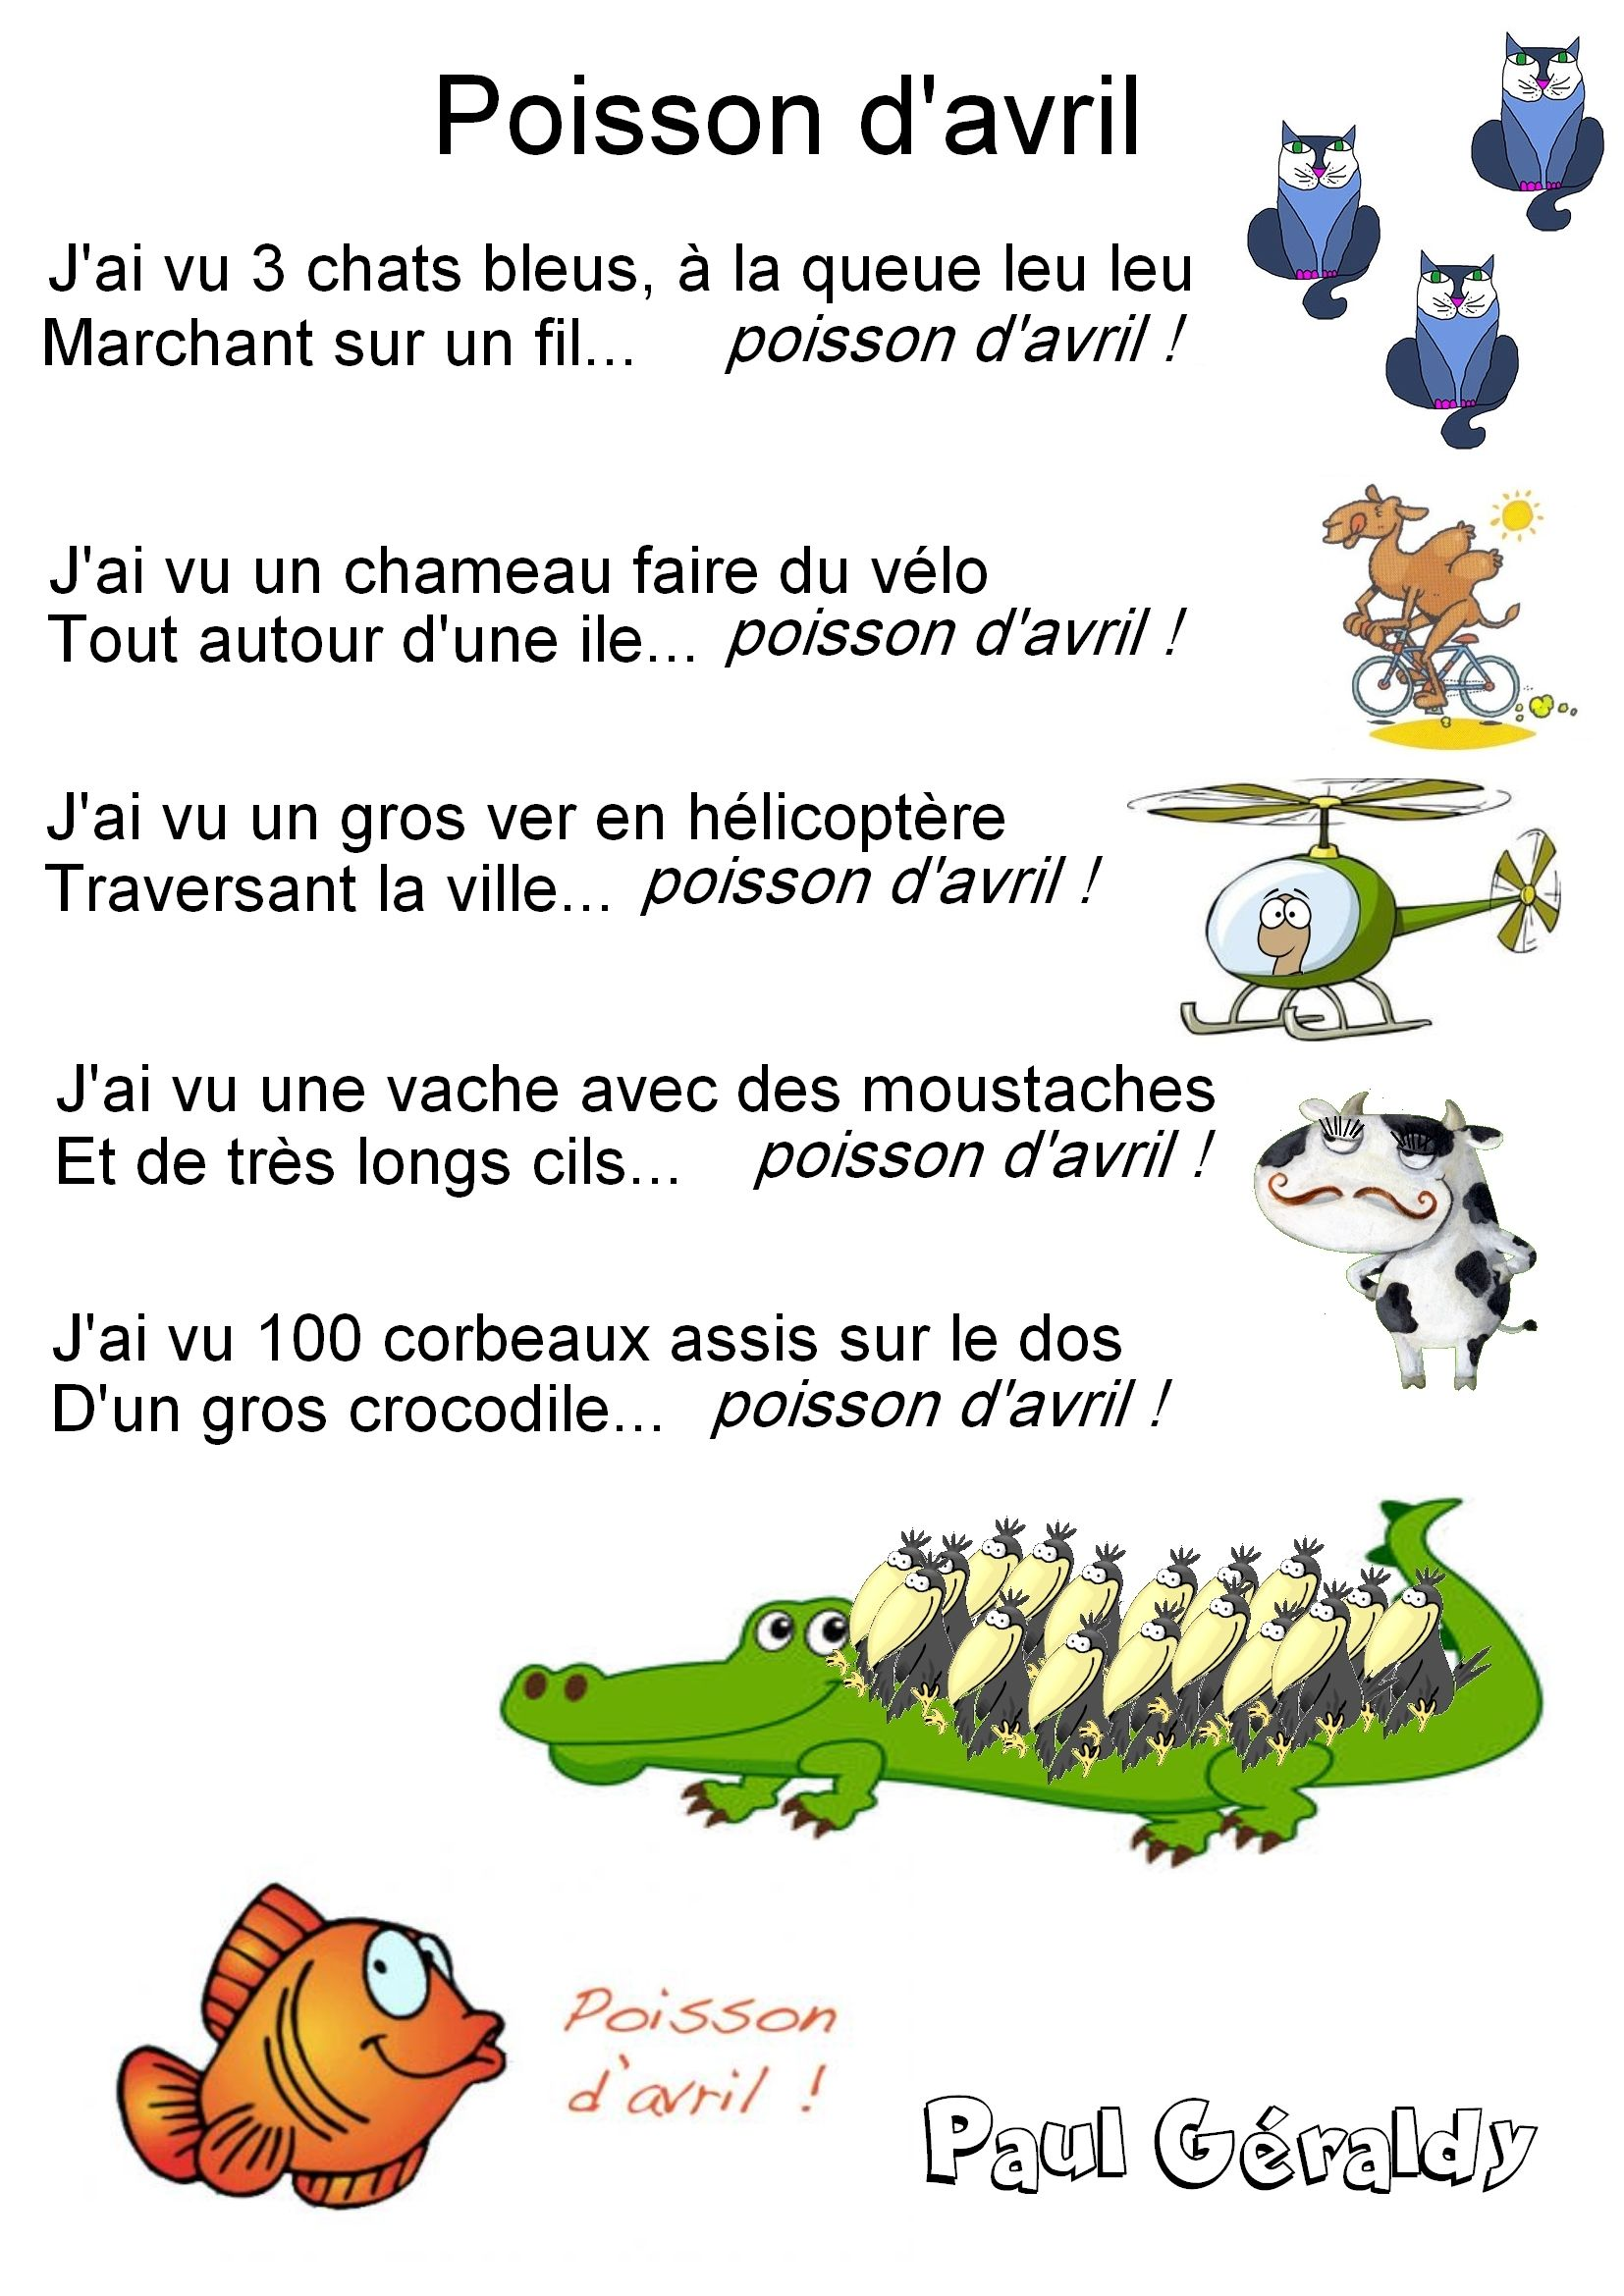 GAY FISH TRADUCTION FRANAISE - Paroles de chanson